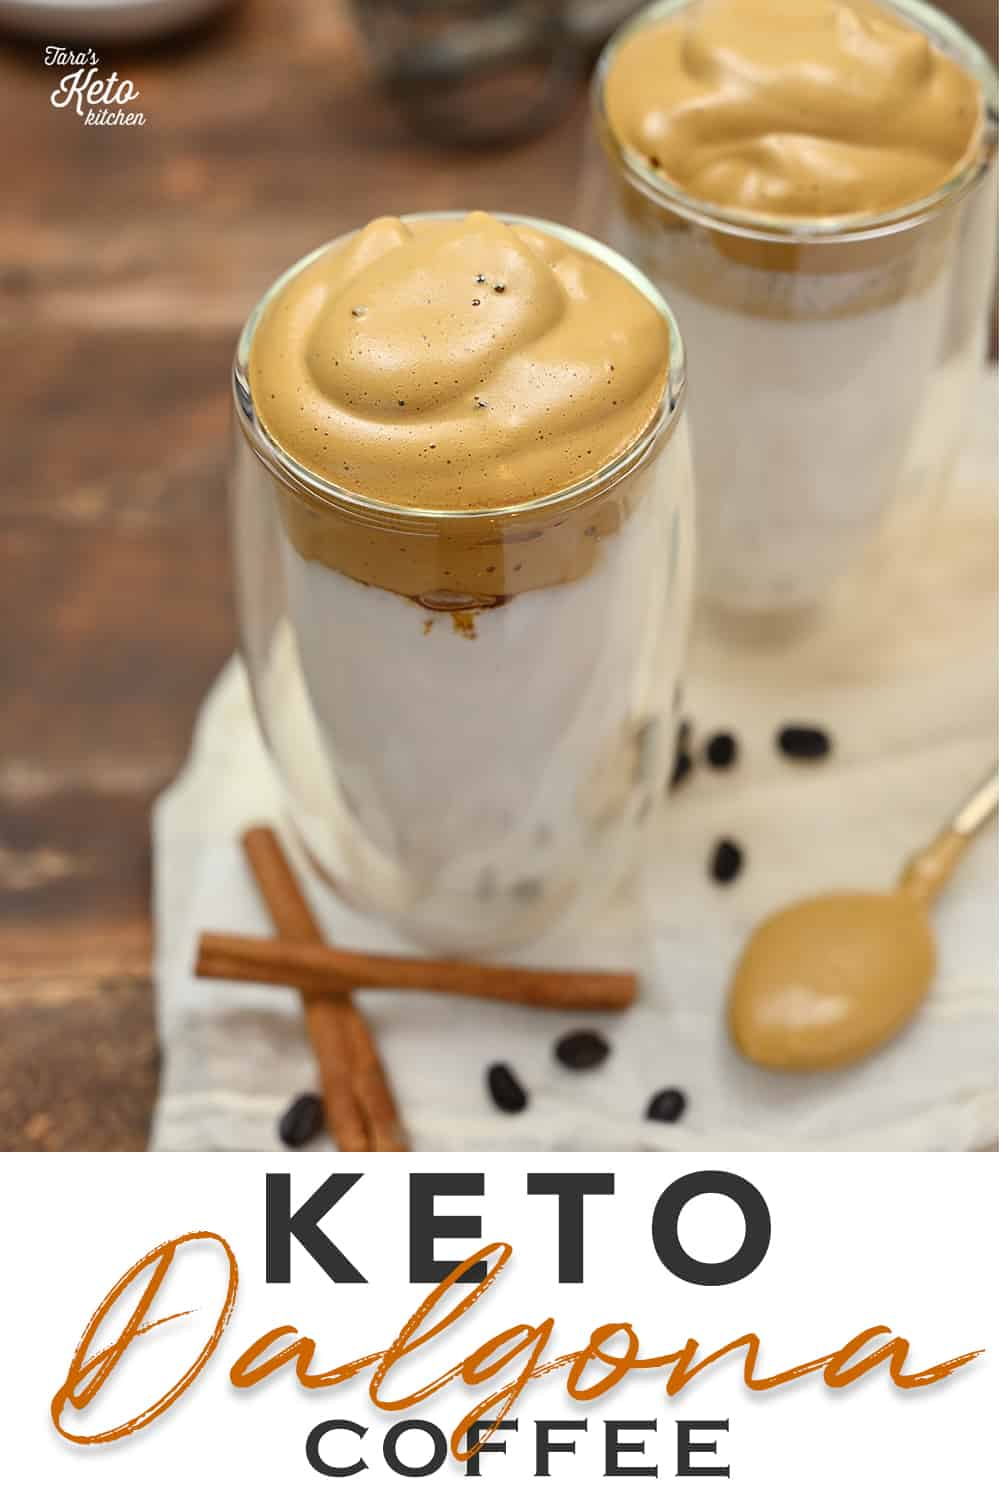 Keto Dalgona Coffee served in insulated glass tumbler with a spoonful of dalgona whip beside it.